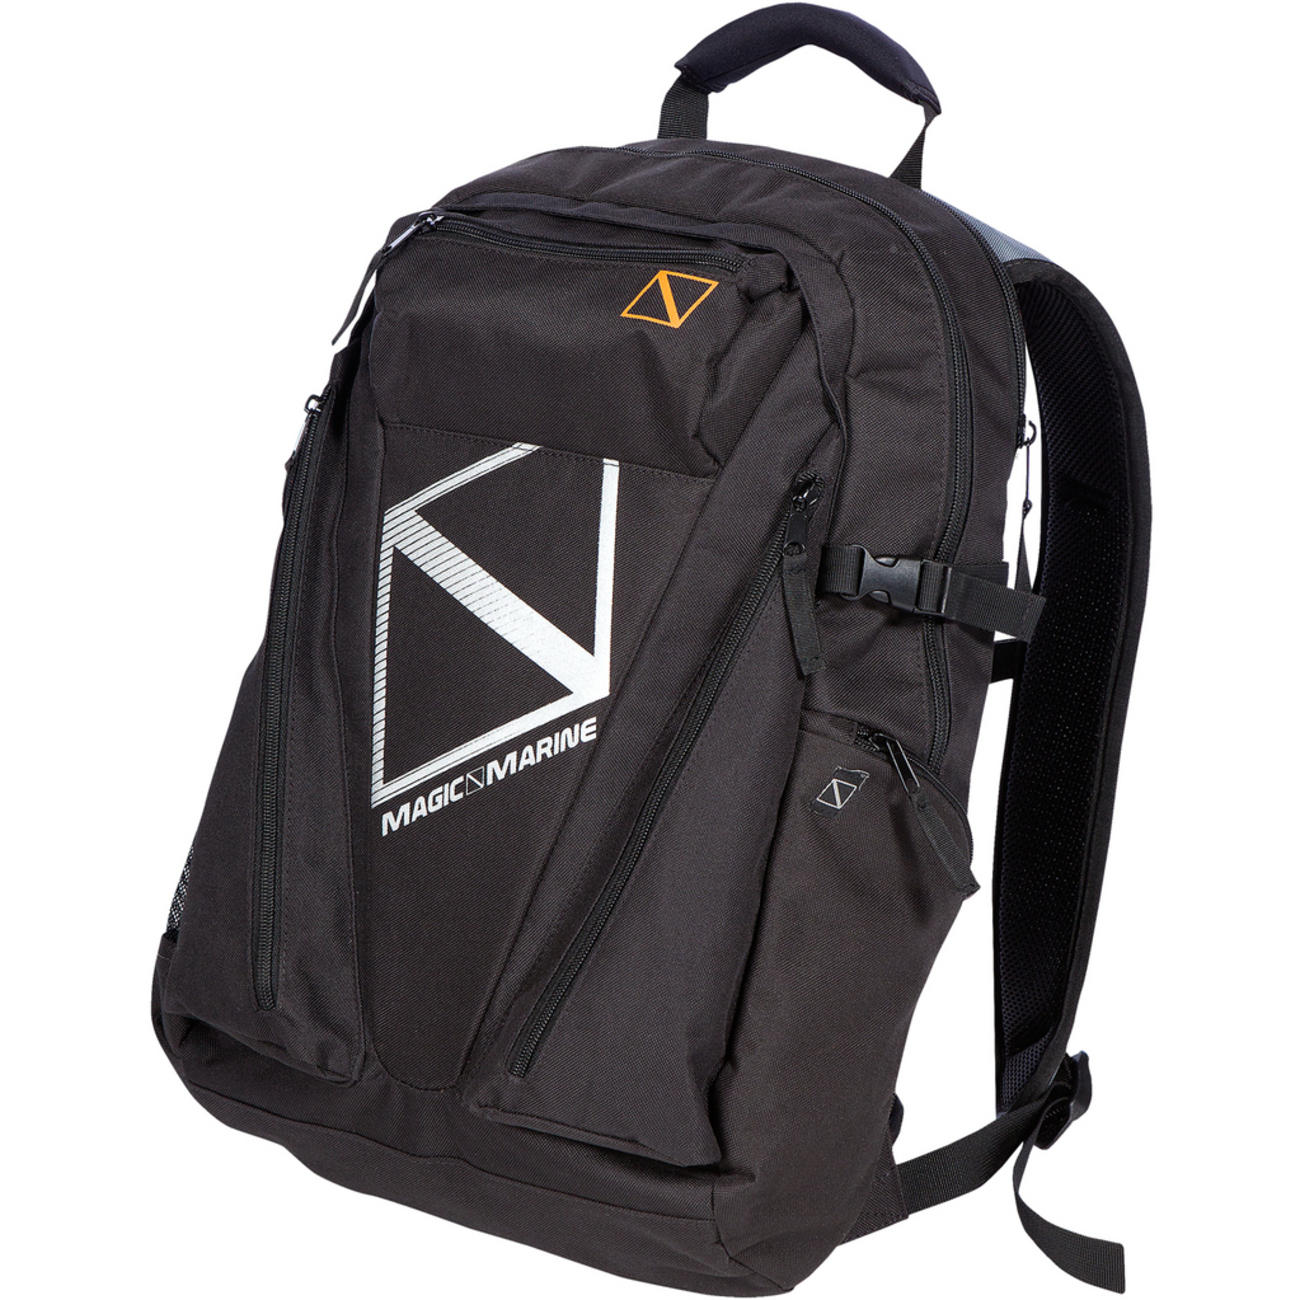 BACKPACK PRO 20Lバックパック クッション付きPCリュック